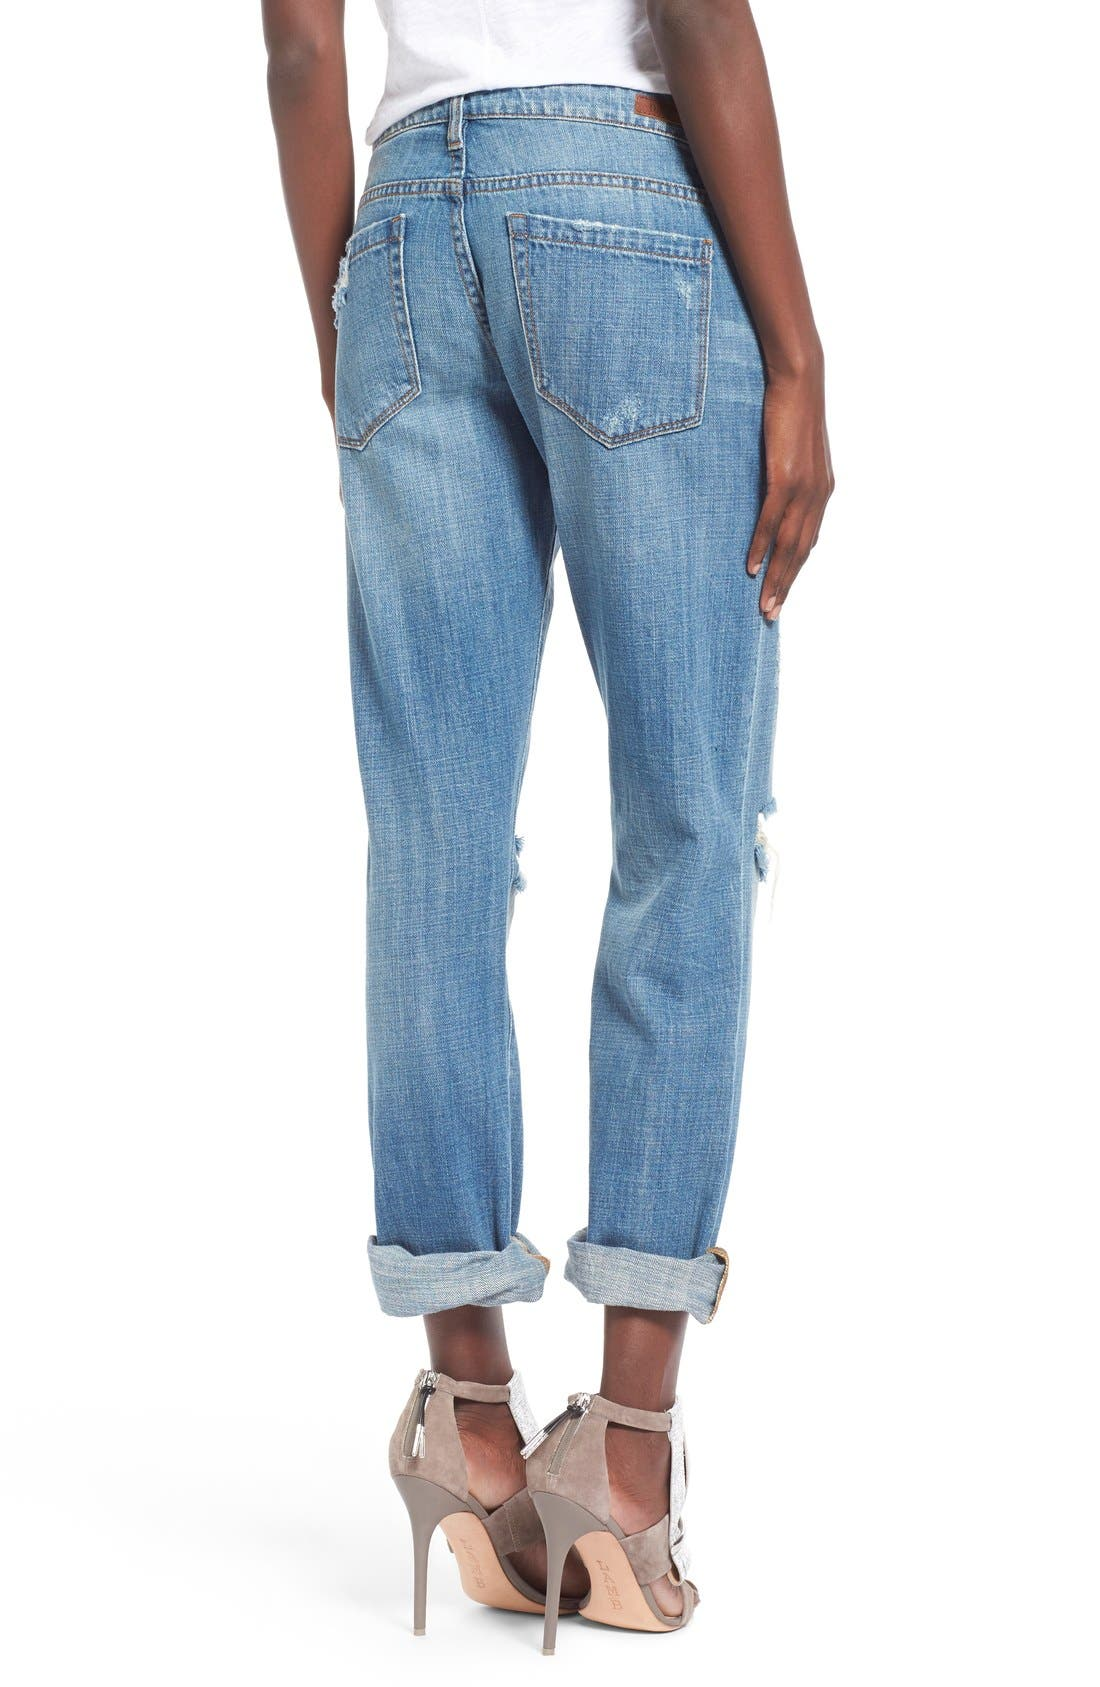 'Meant to Be' High Rise Distressed Boyfriend Jeans,                             Alternate thumbnail 3, color,                             400